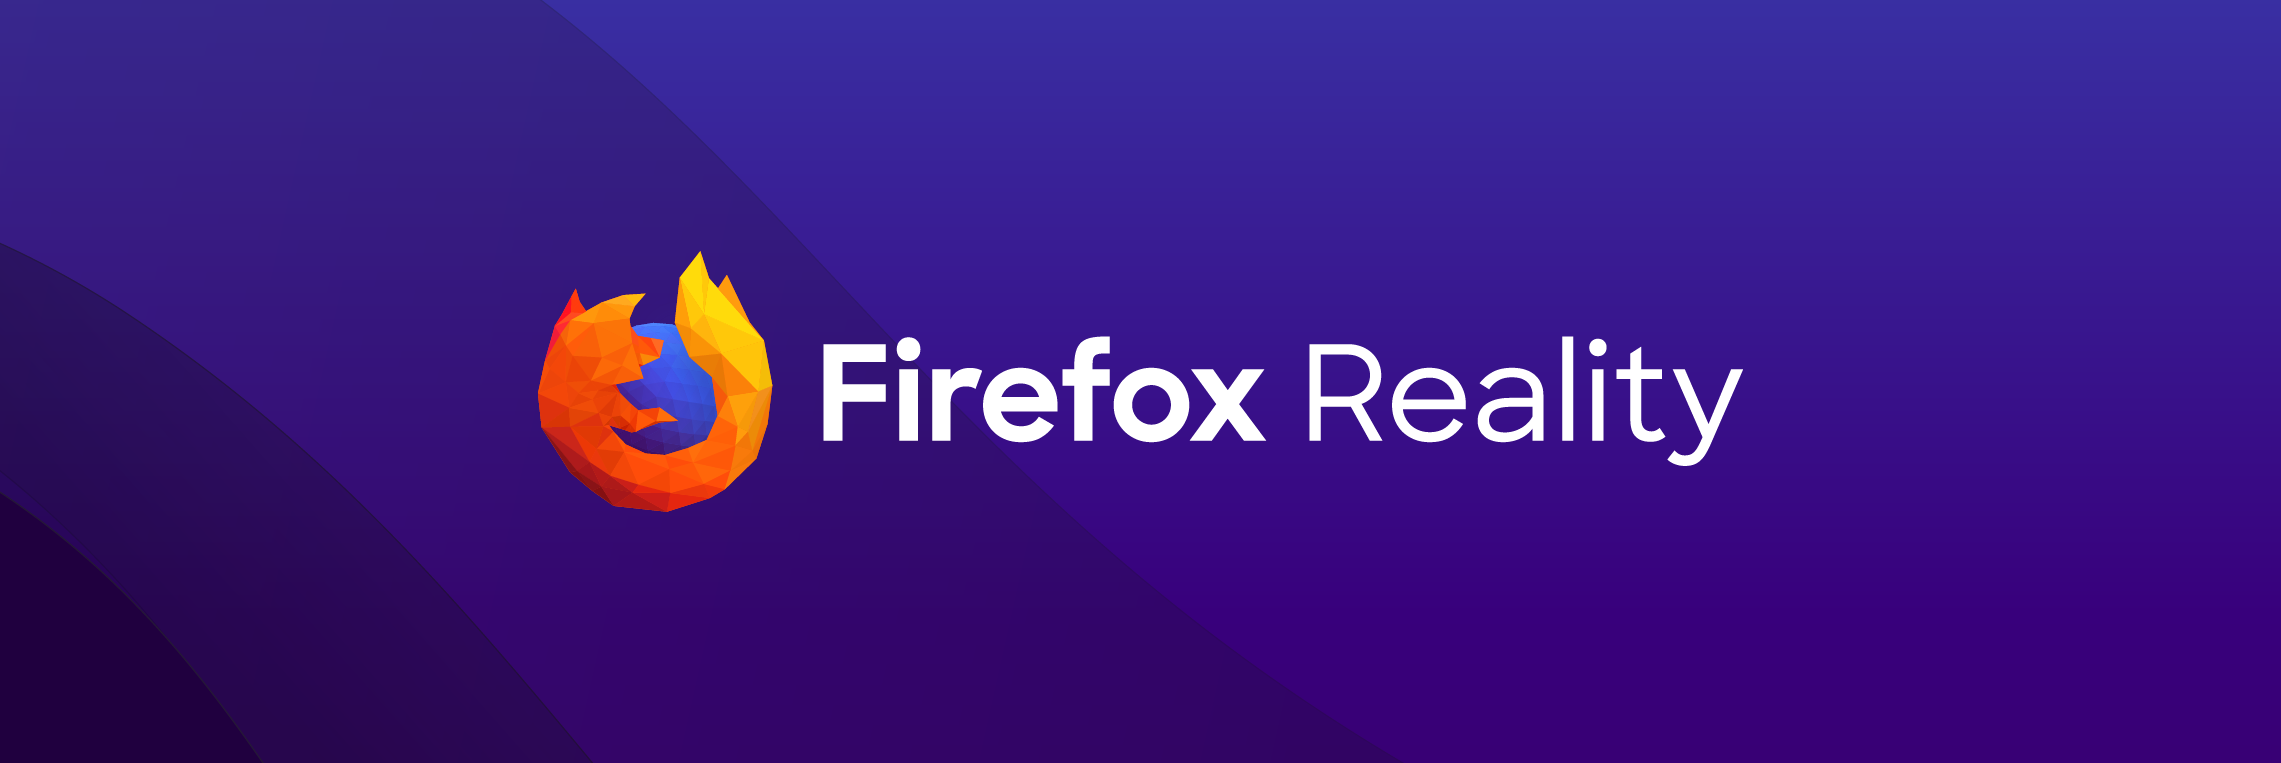 How to Use Firefox Reality on the Oculus Go VR Headset | The